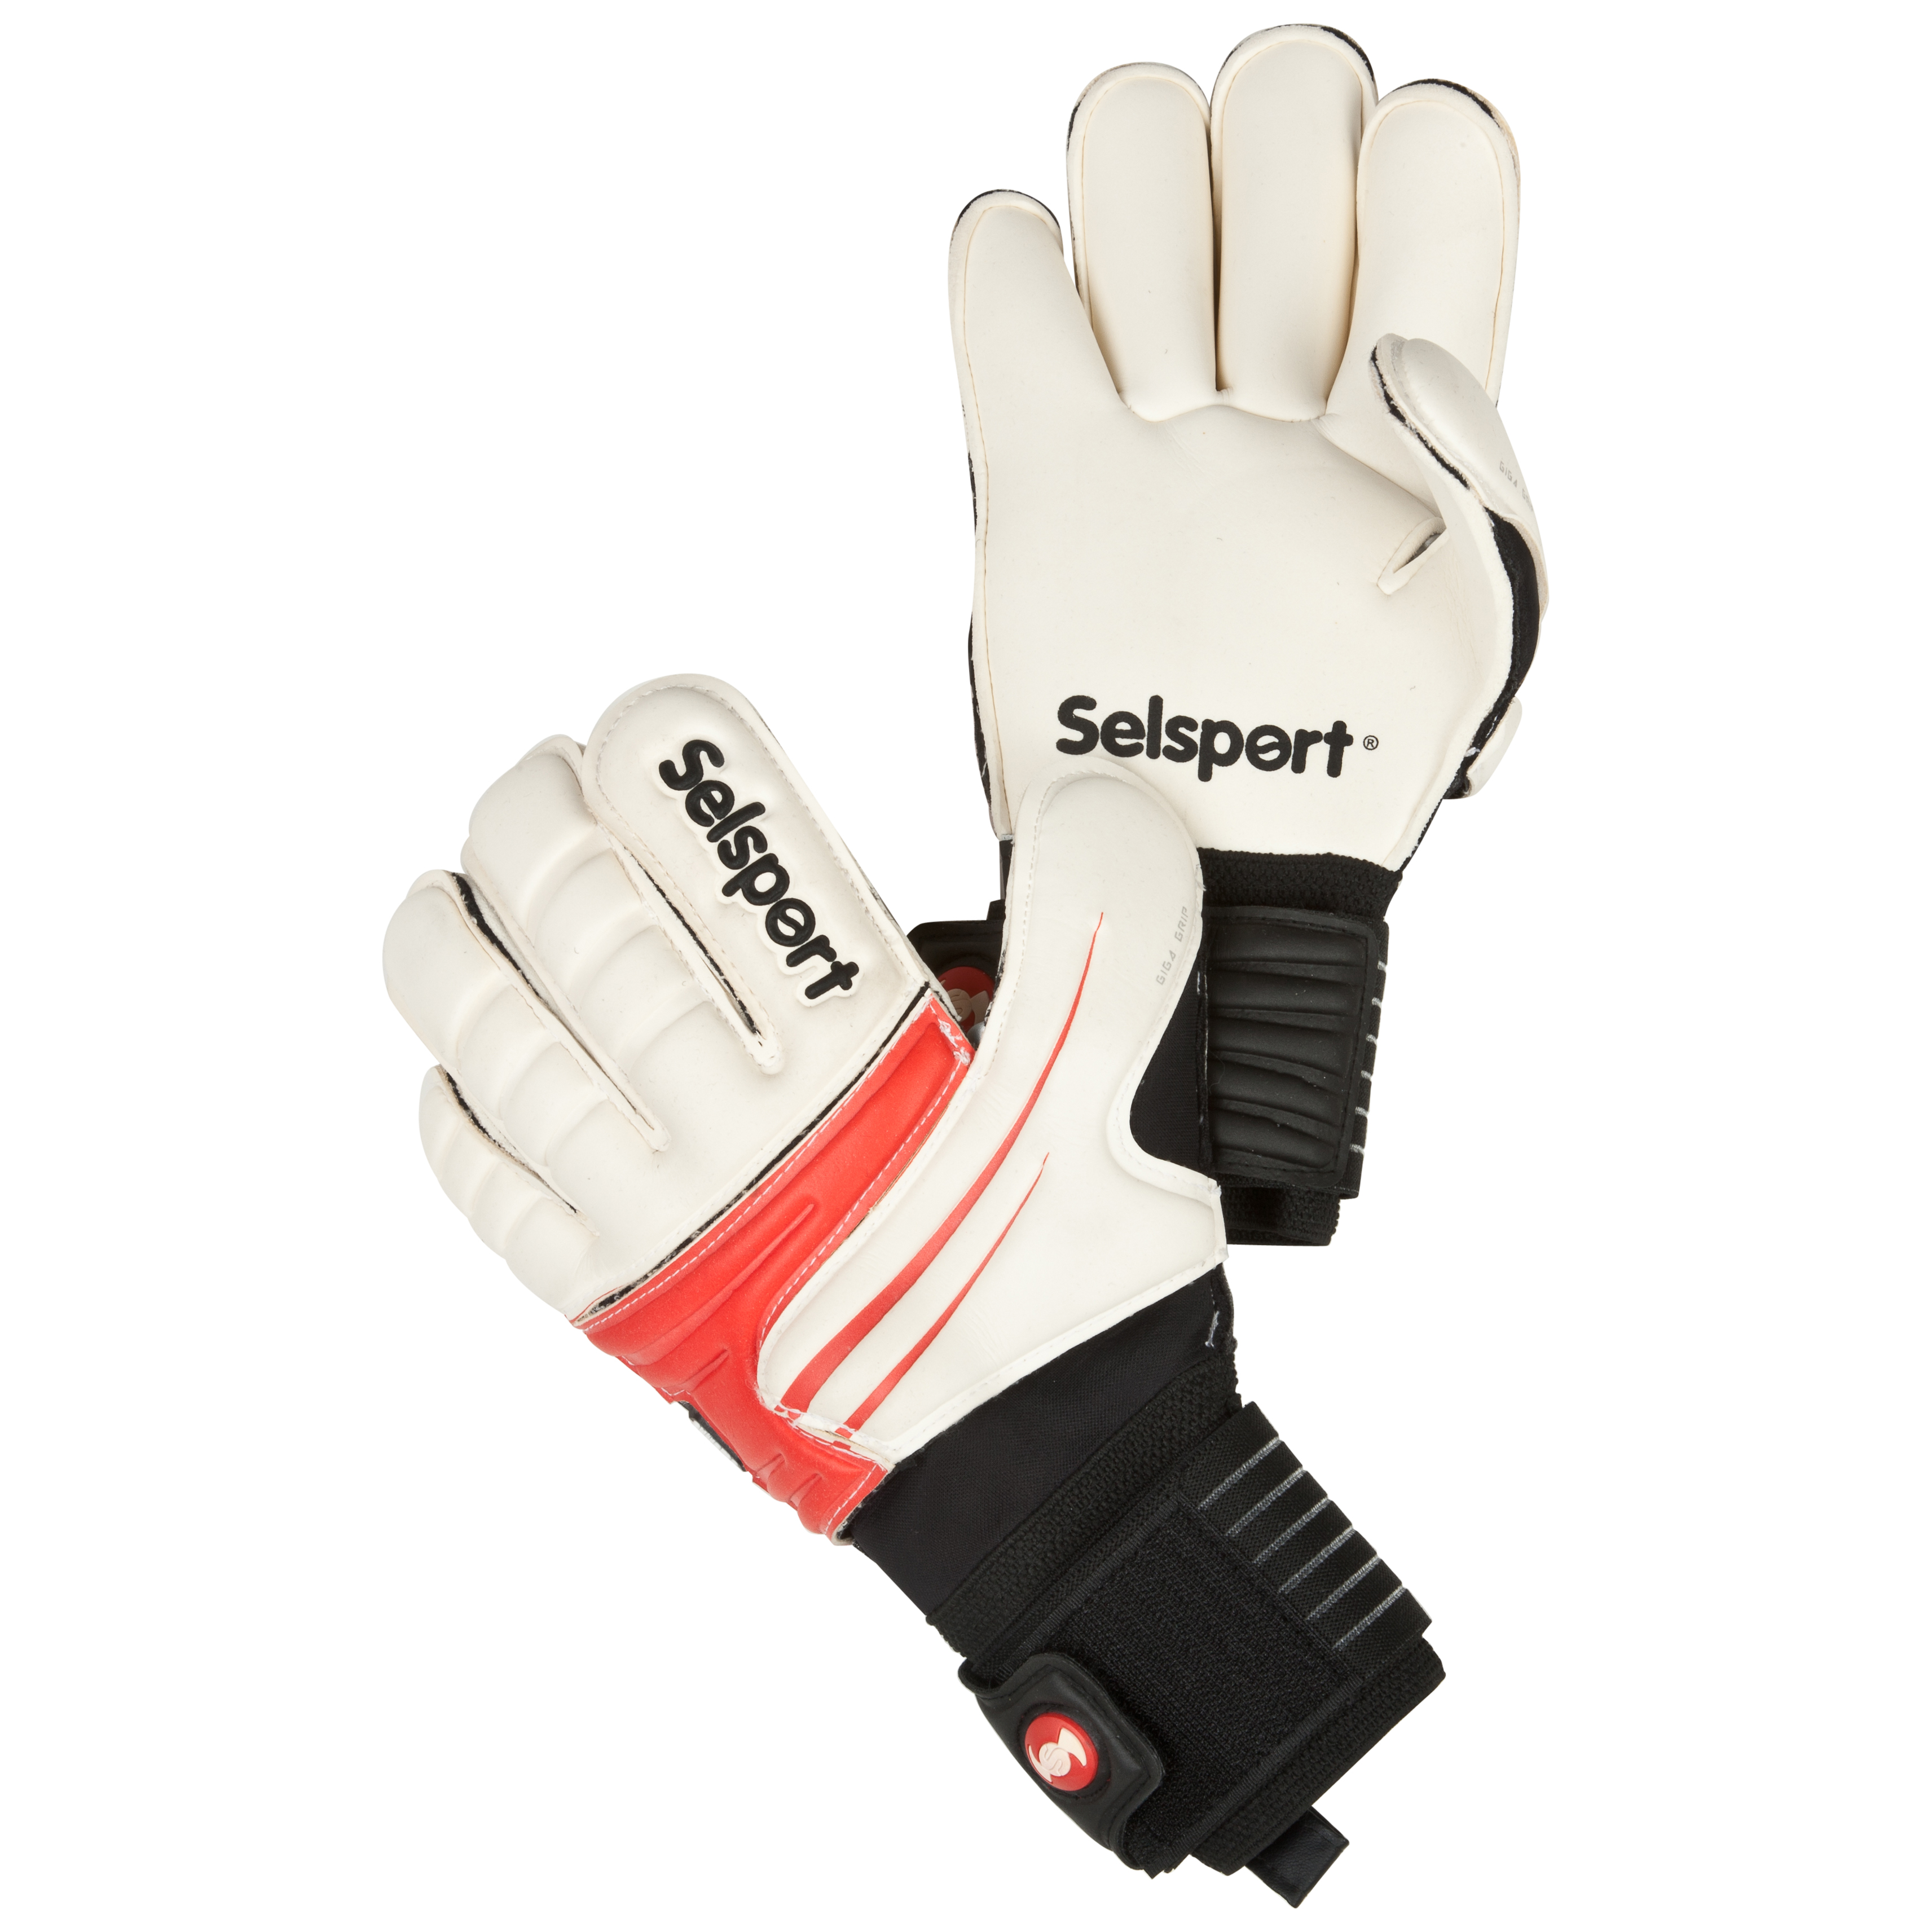 Selsport Extreme 1 Goalkeeper Gloves - Kids-Red